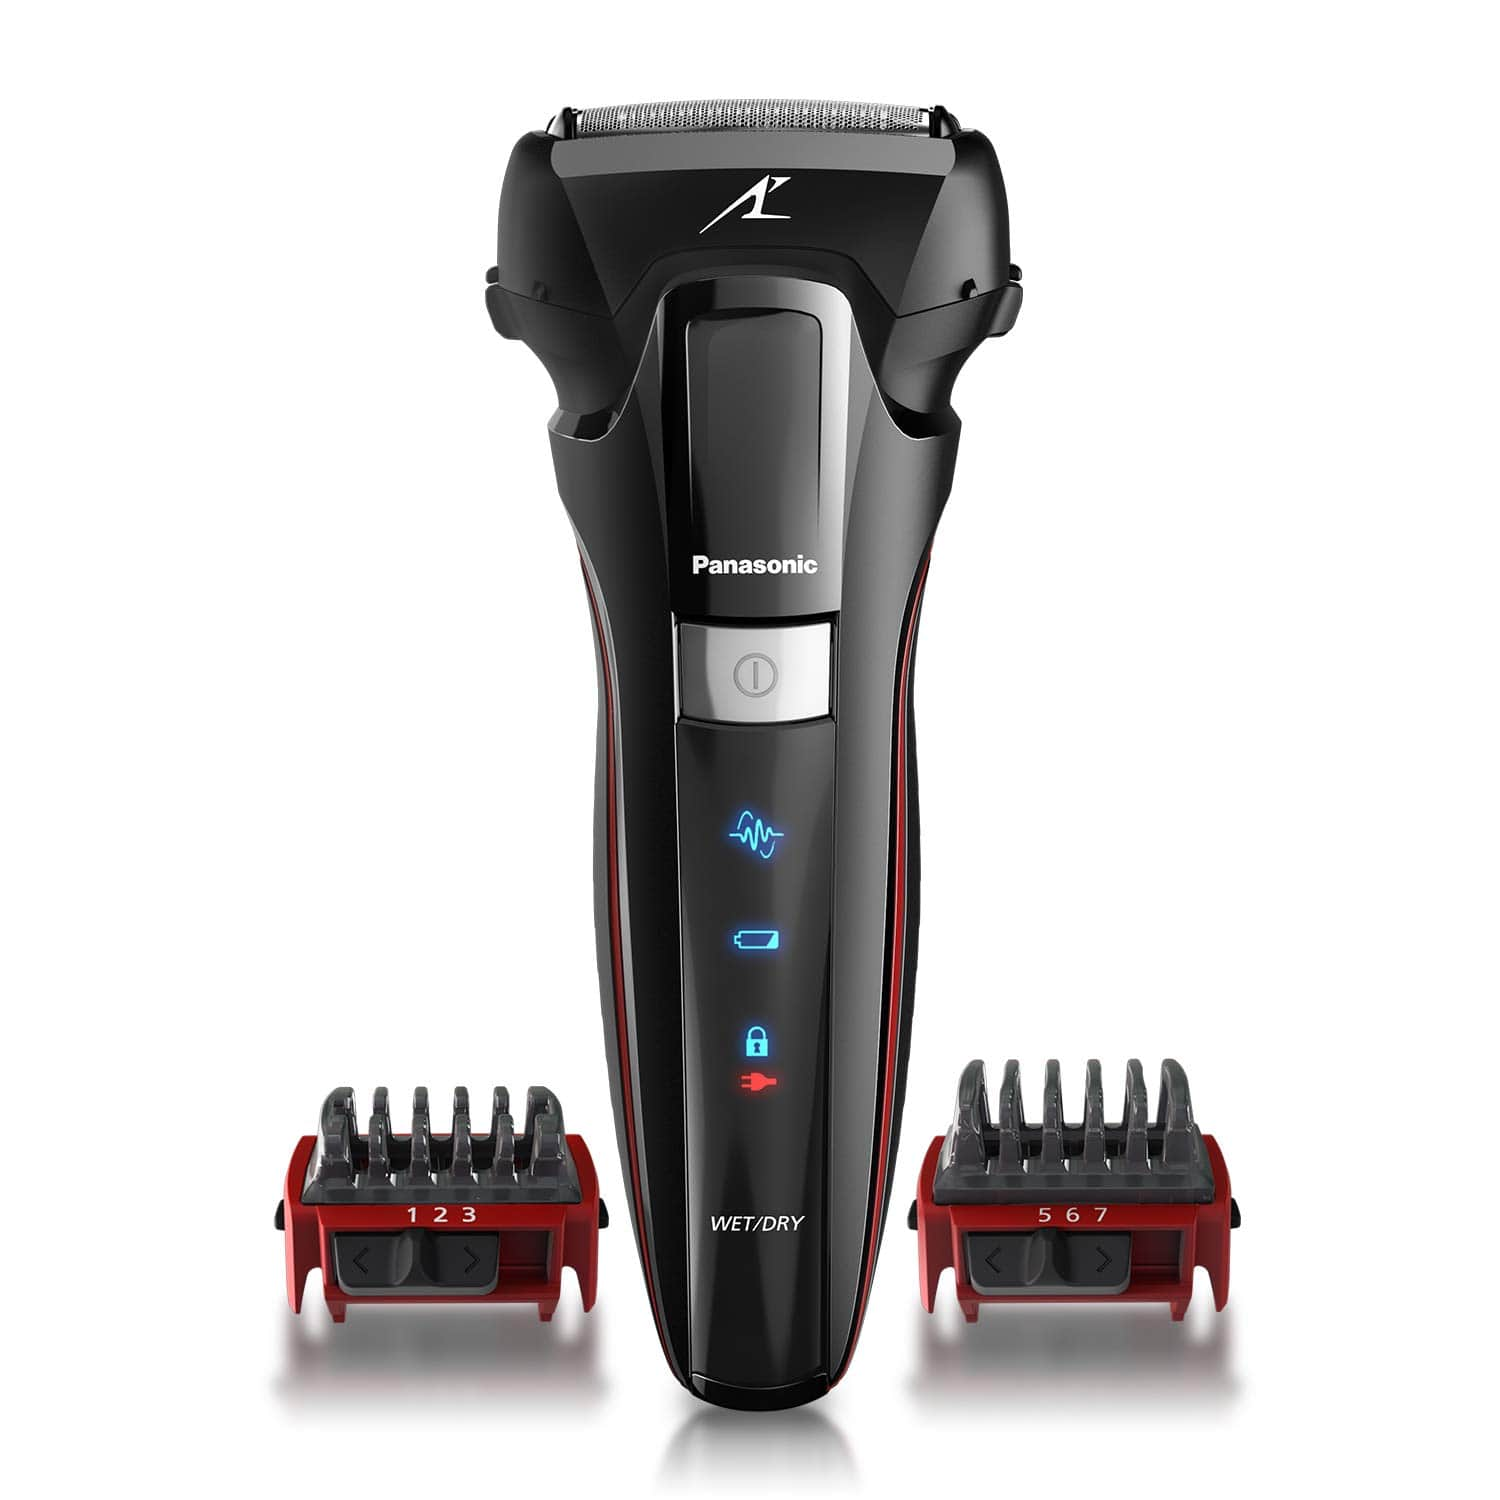 Amazon Offer Panasonic Hybrid Wet Dry Shaver, Trimmer & Detailer for $69.99